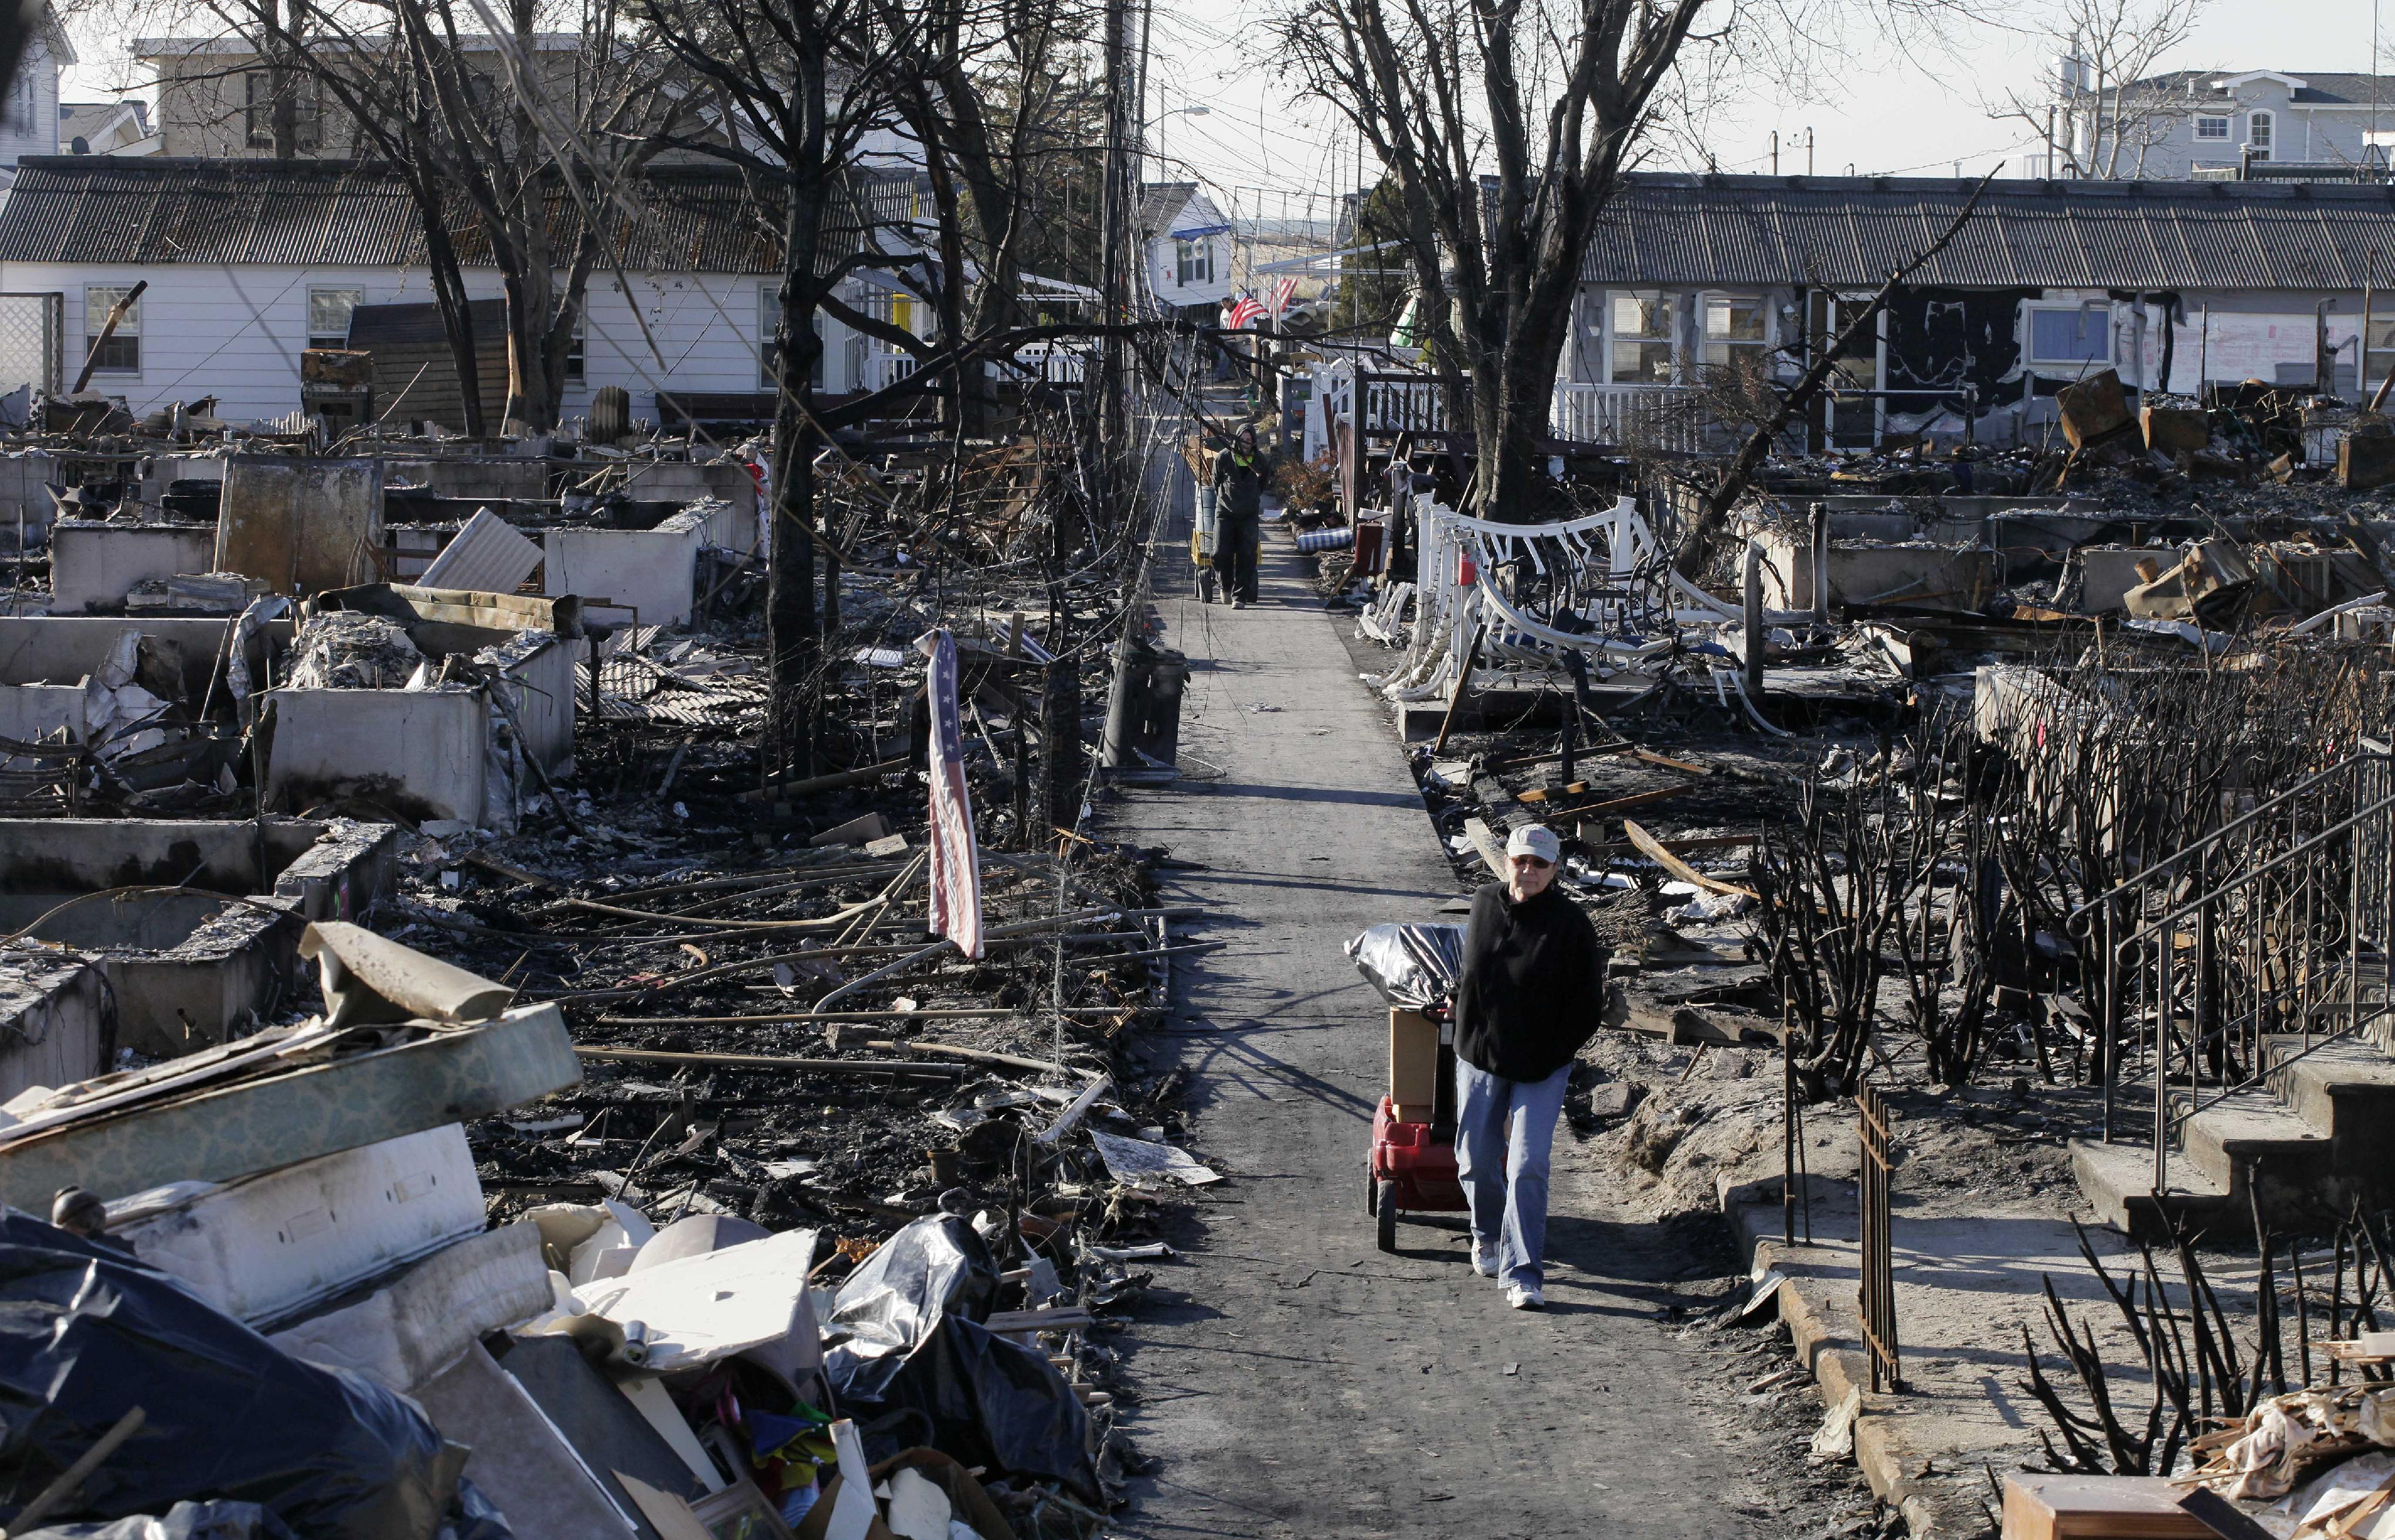 Louise McCarthy carts belongings from her flood-damaged home as she passes the charred ruins of other homes in the Breezy Point section of the Queens borough of New York, Wednesday, Nov. 14, 2012. A fire destroyed more than 100 homes in the oceanfront community during Superstorm Sandy. (AP Photo/Mark Lennihan)